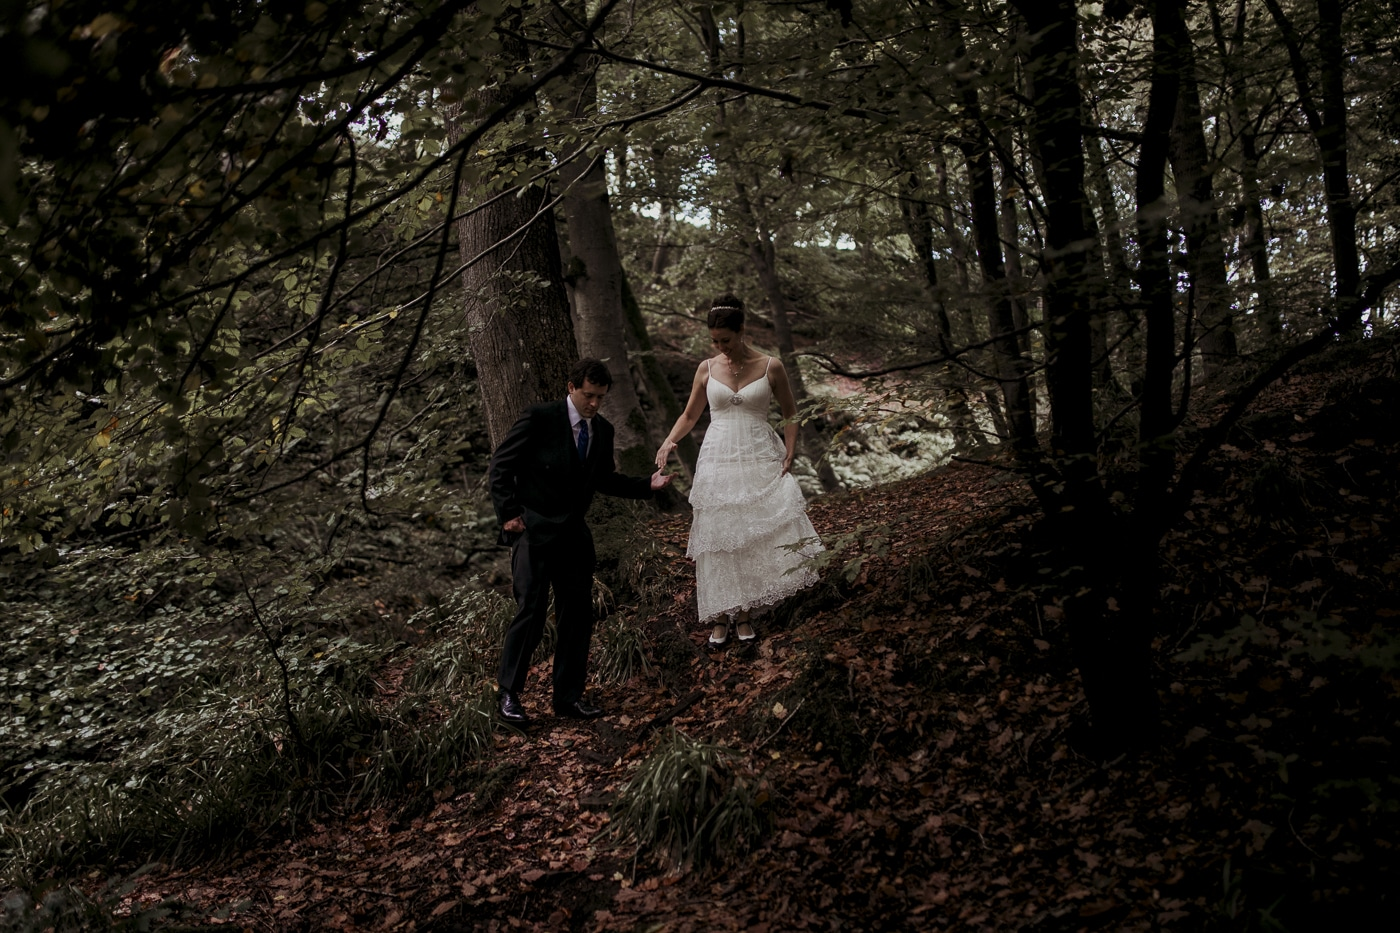 Helping bride through woodland for wedding by Joshua Wyborn photographic